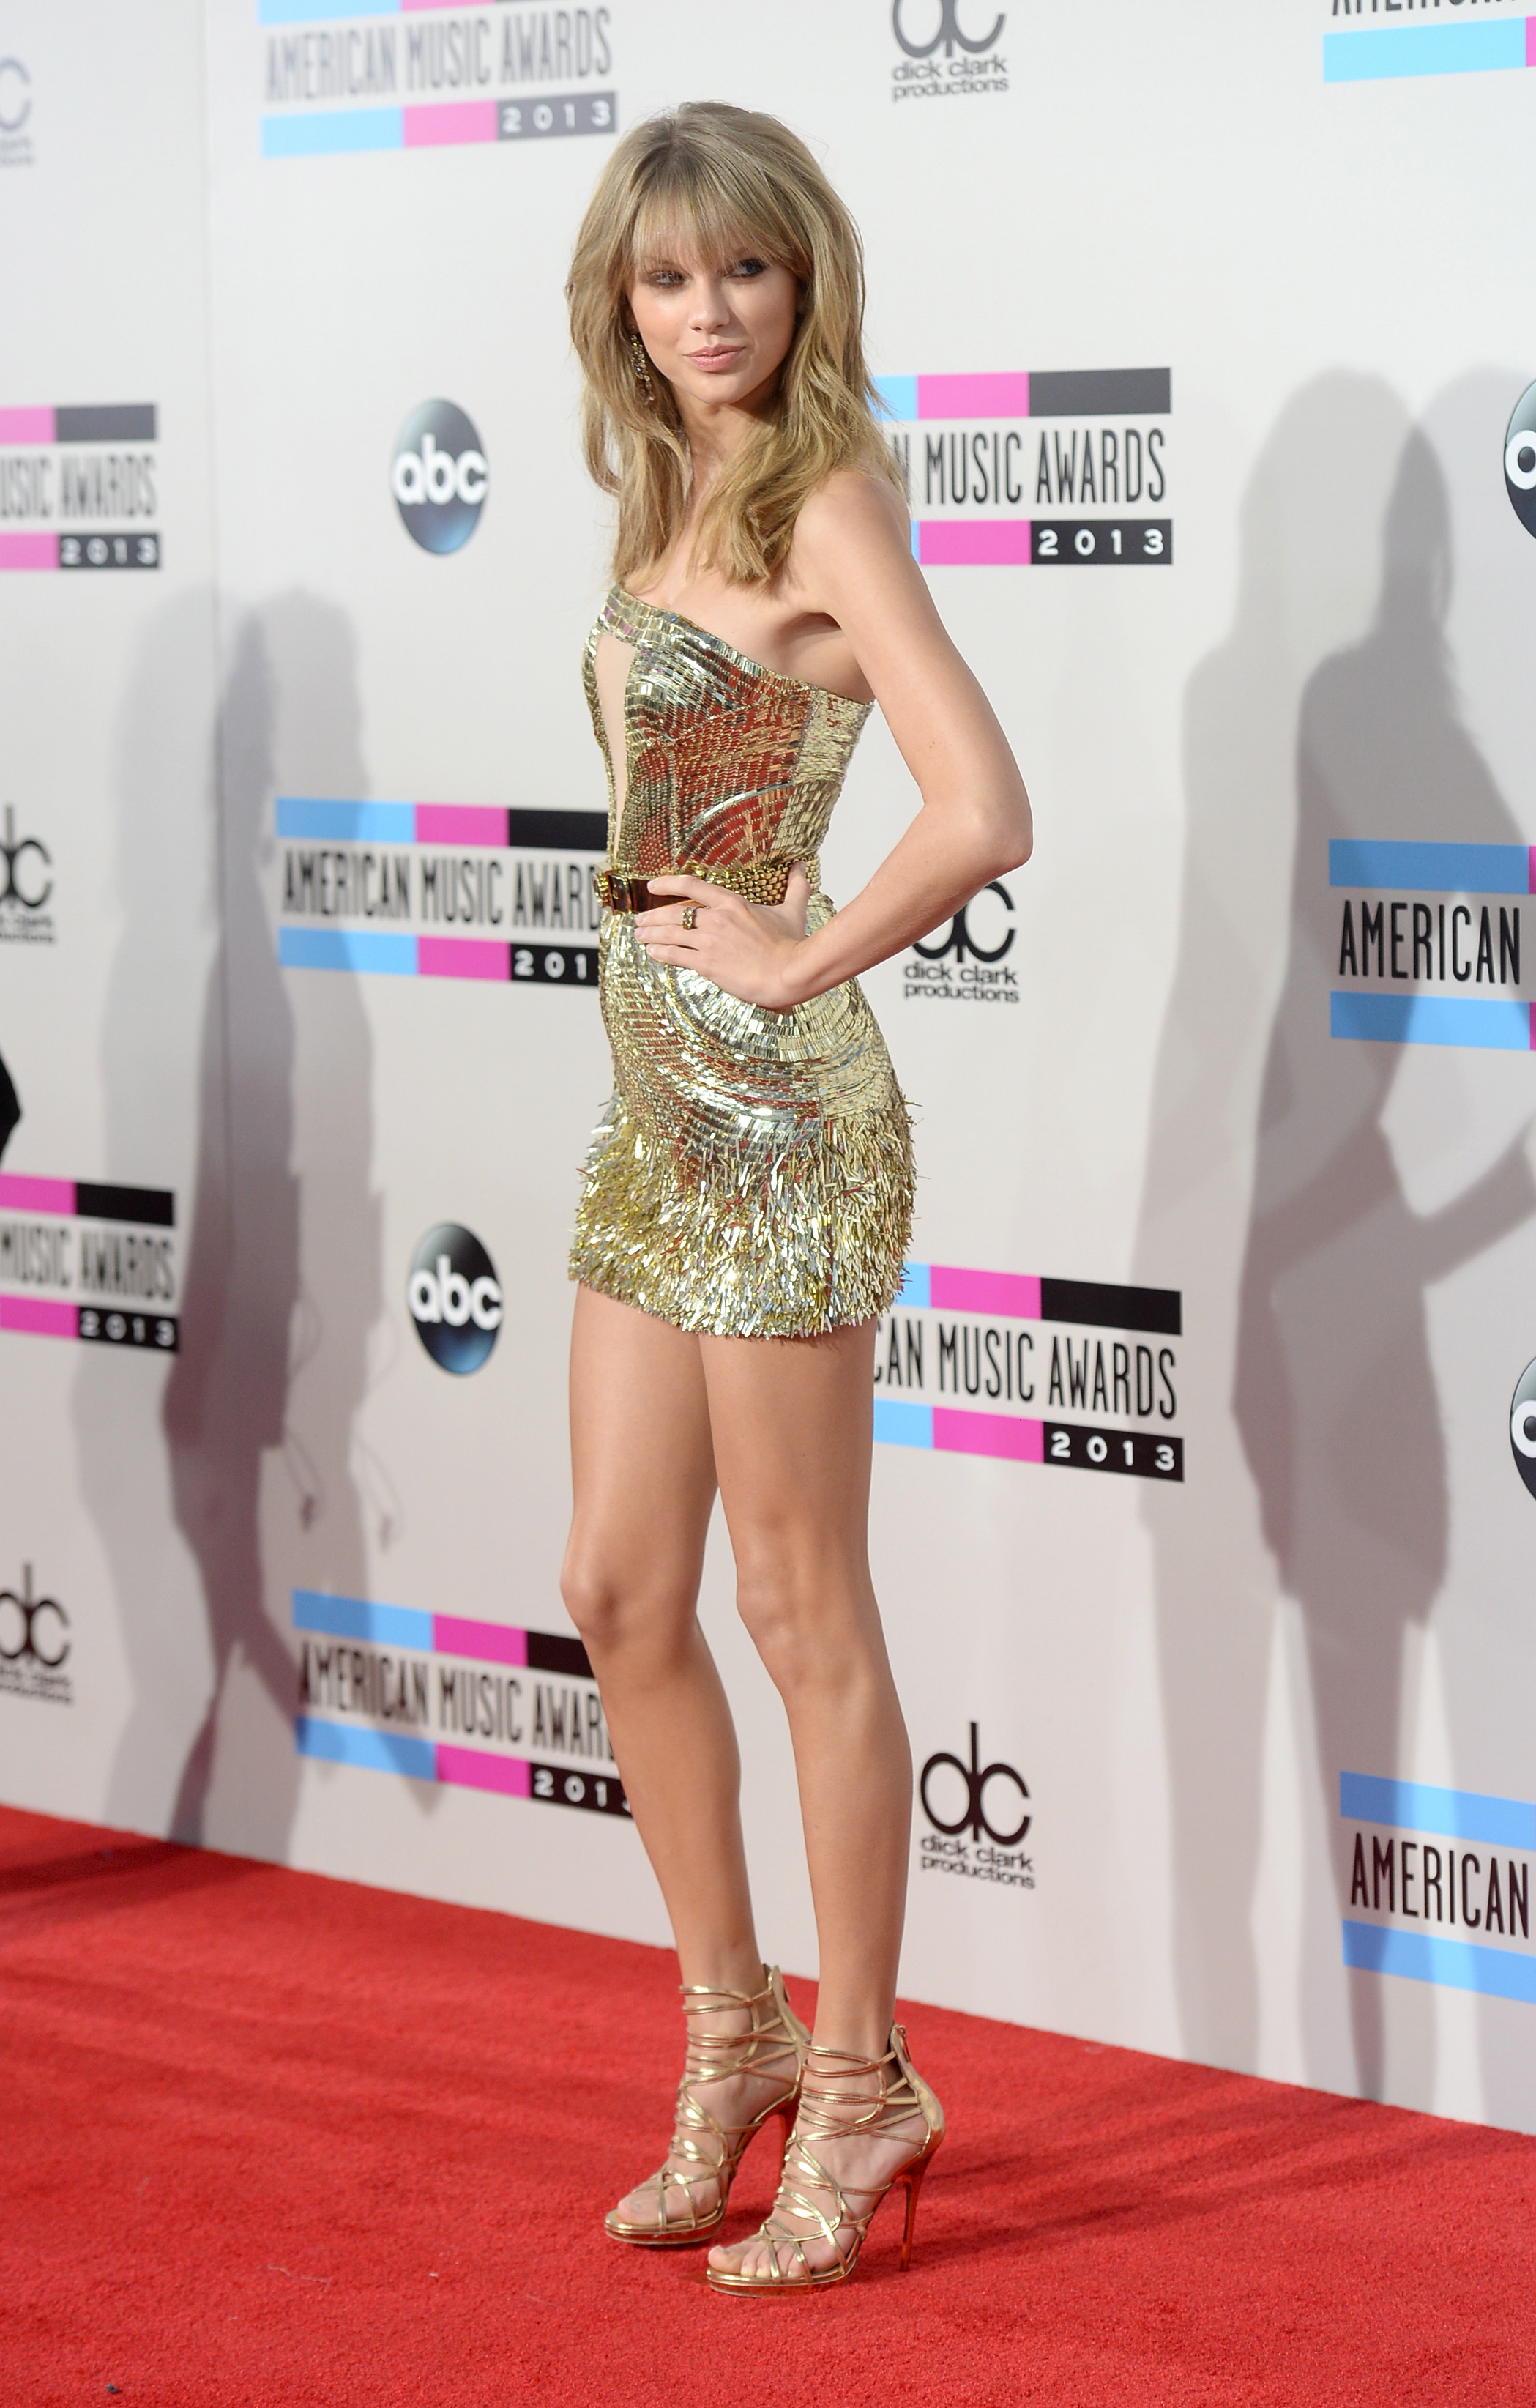 http://taylorpictures.net/albums/app/2013/americanmusicawards/010.jpg